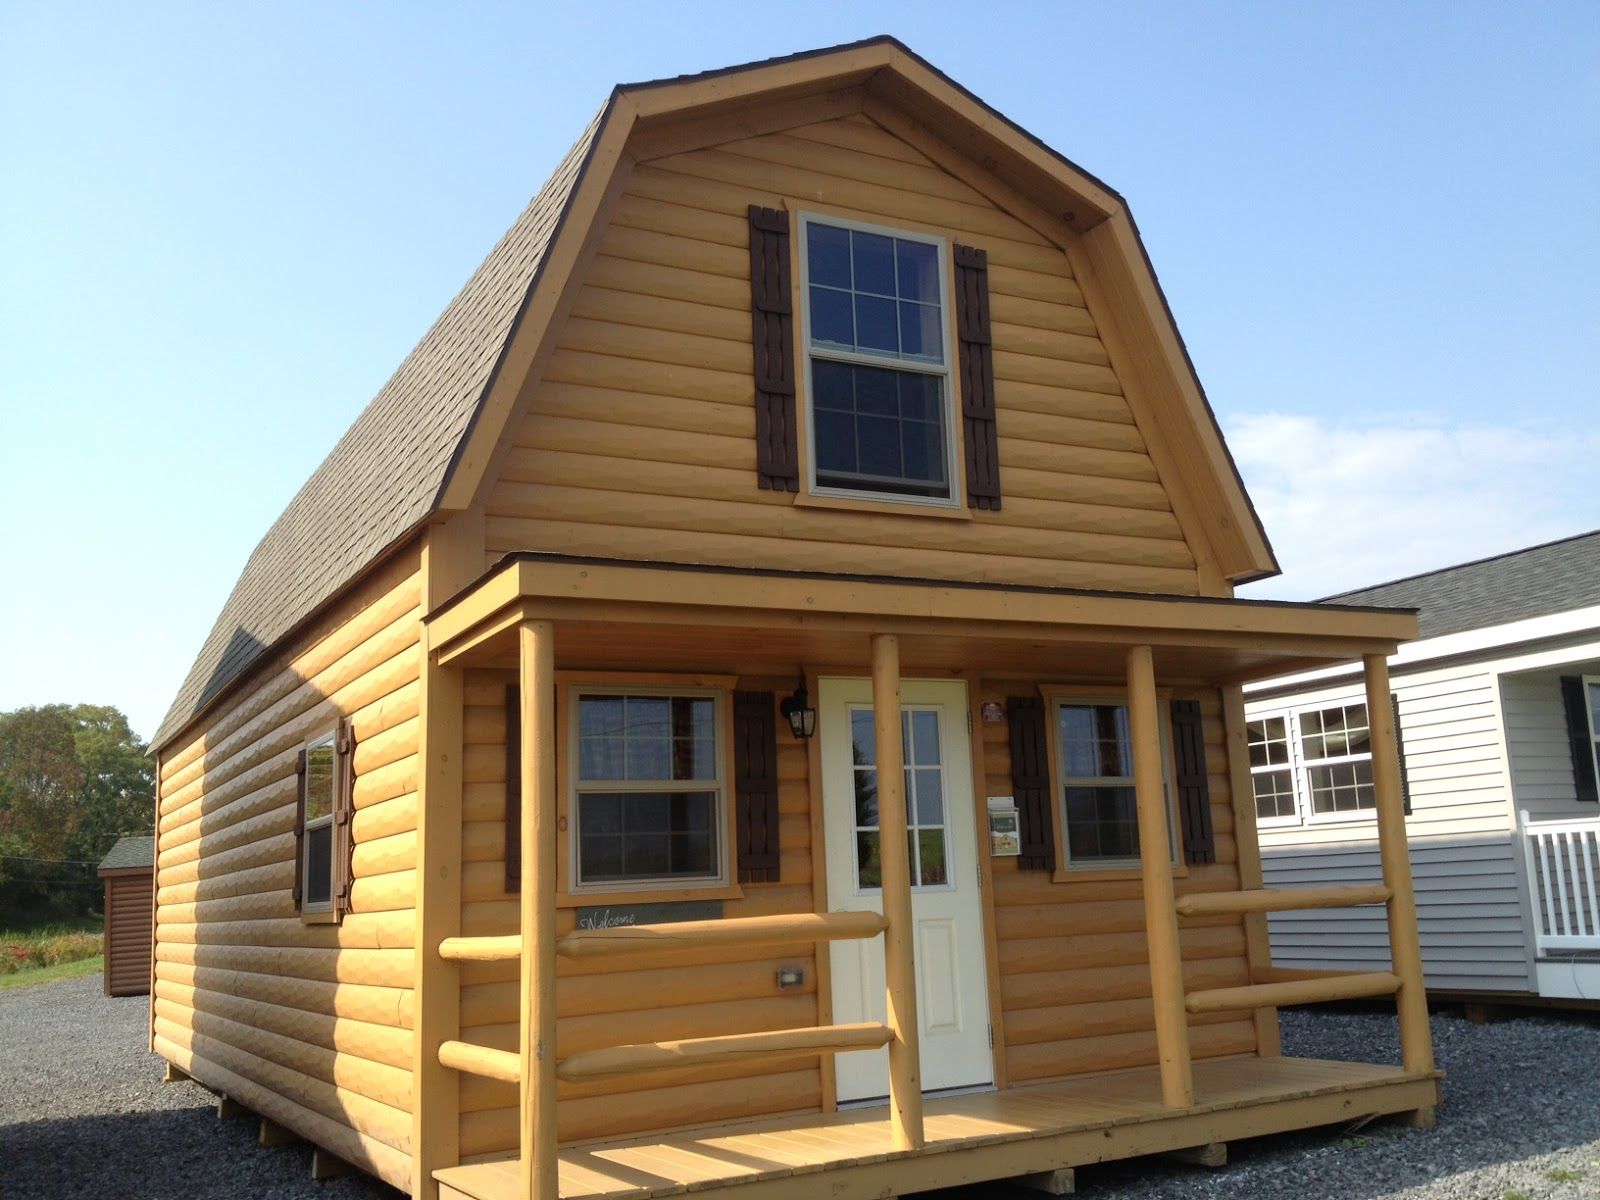 Tiny Log Home Designs: Small Scale Homes: Wood-Tex 768 Square Foot Prefab. Cabin